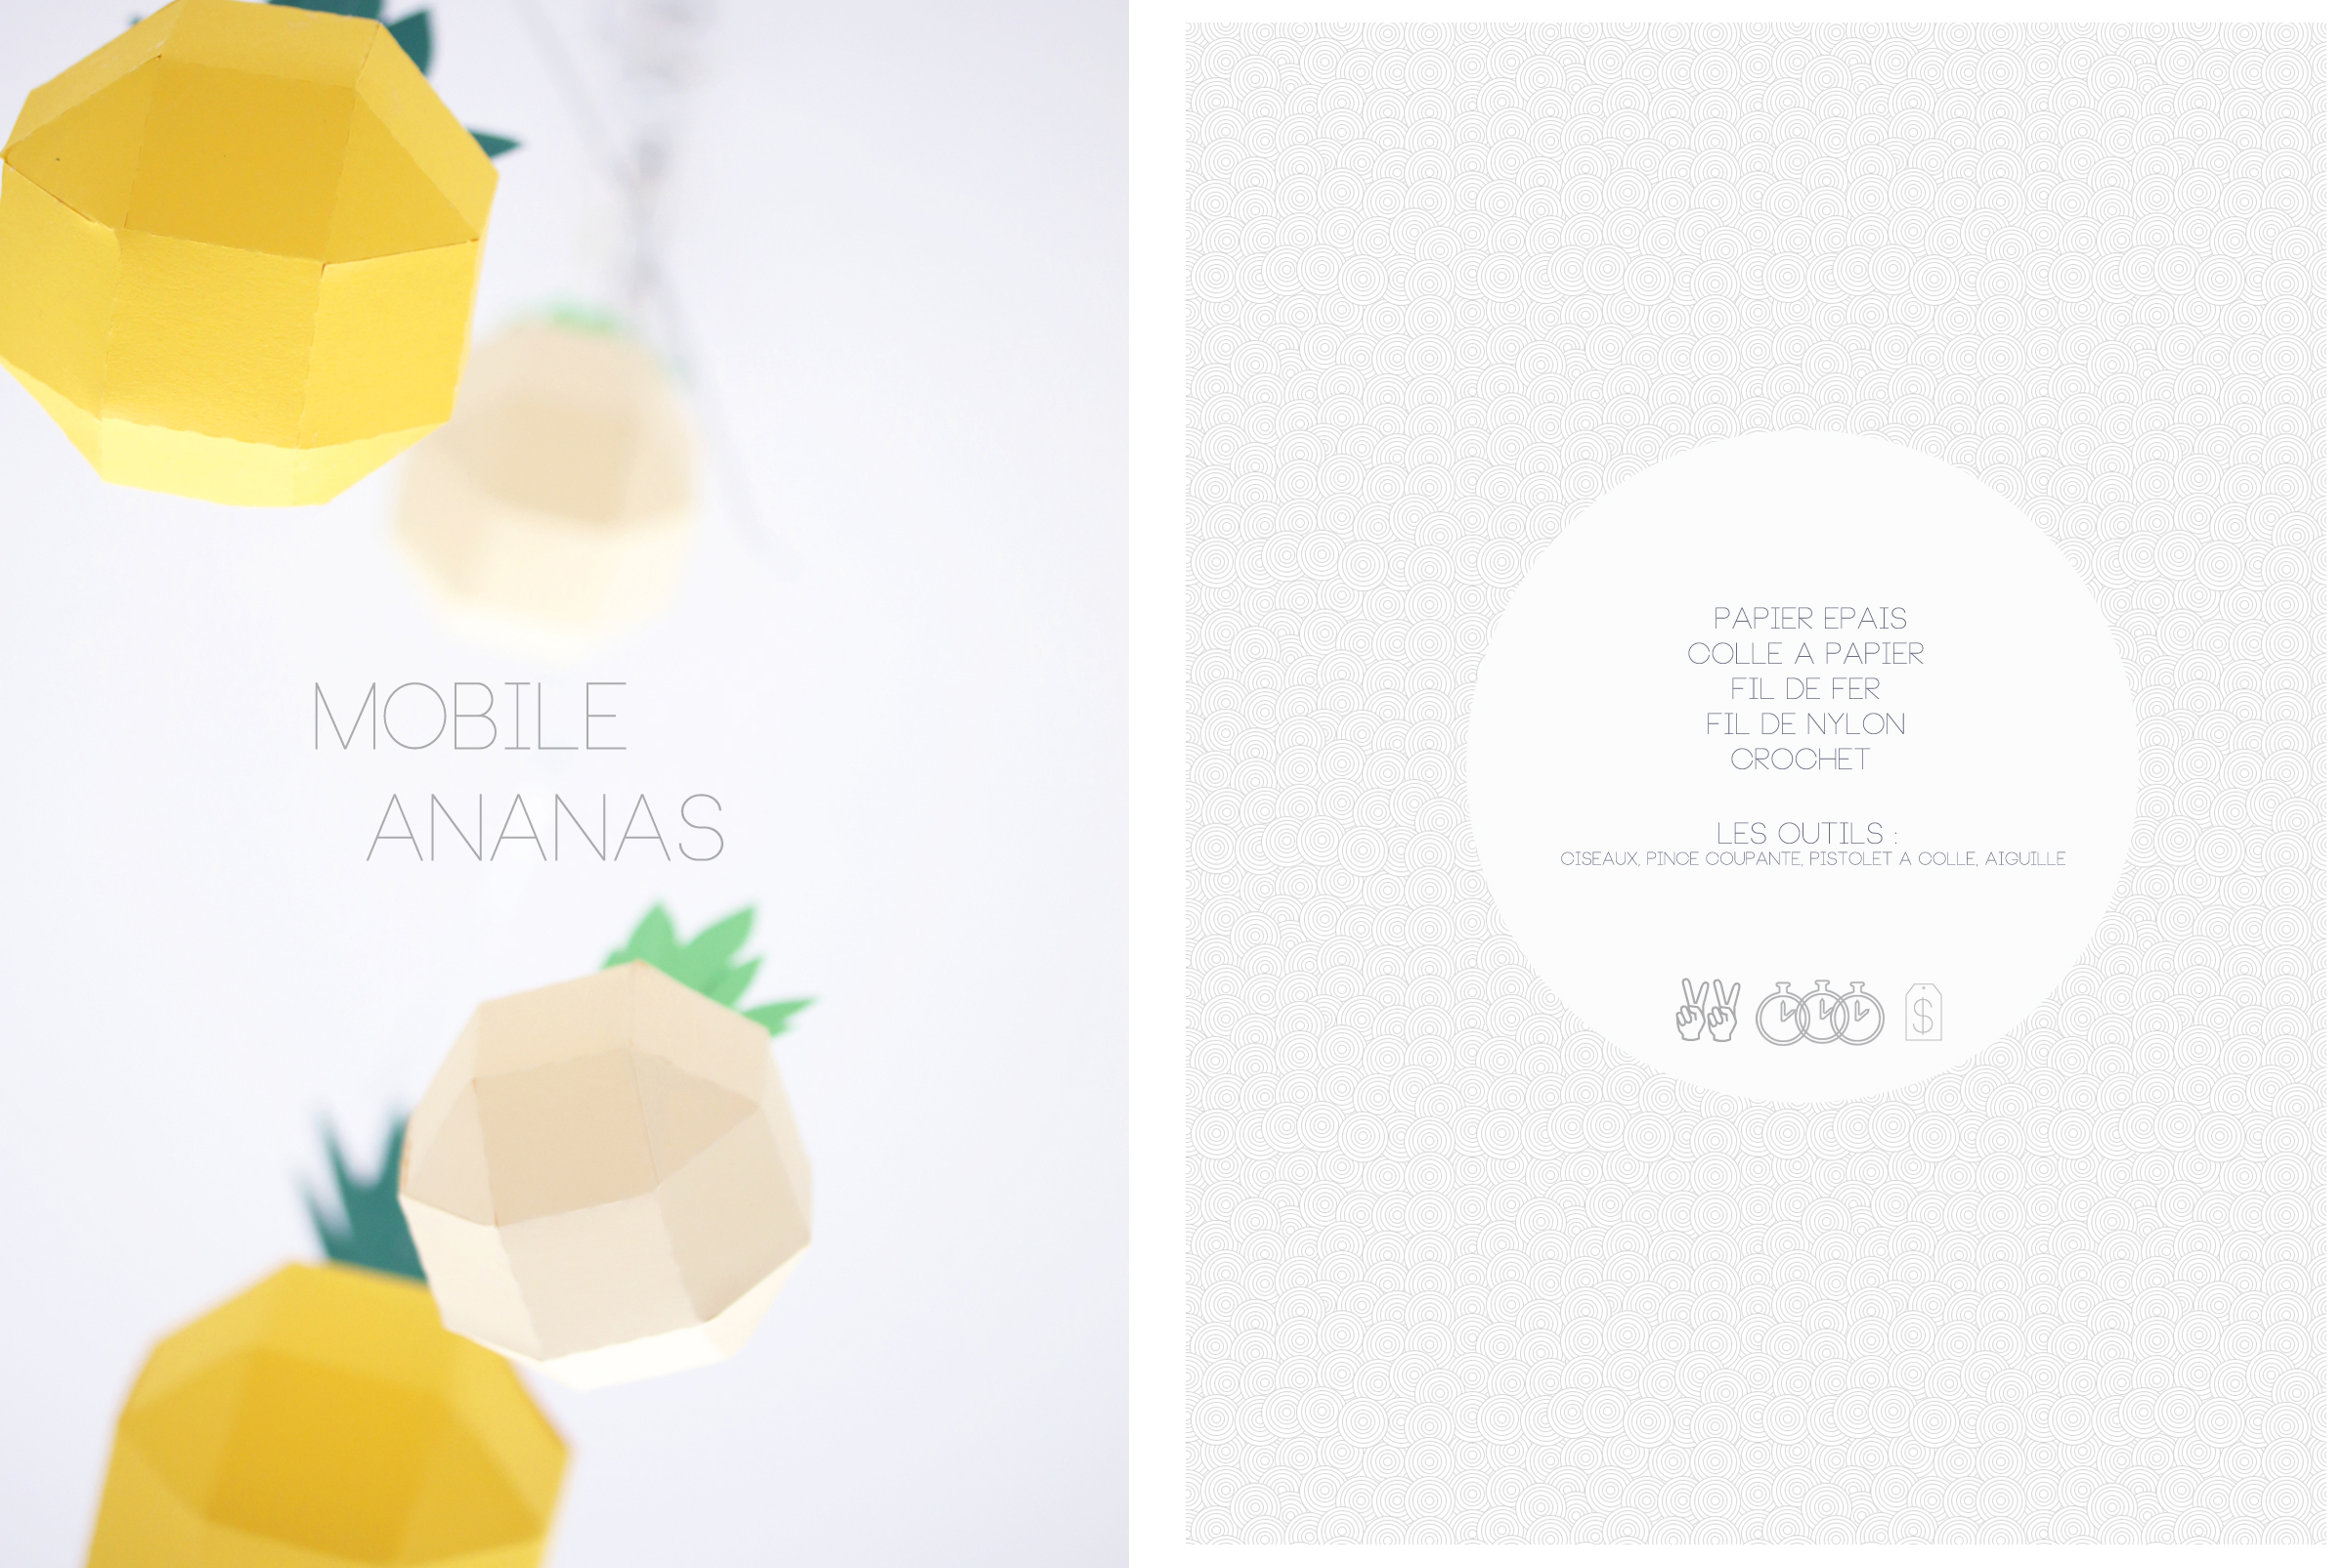 DIY mobile ananas | SP4NK BLOG